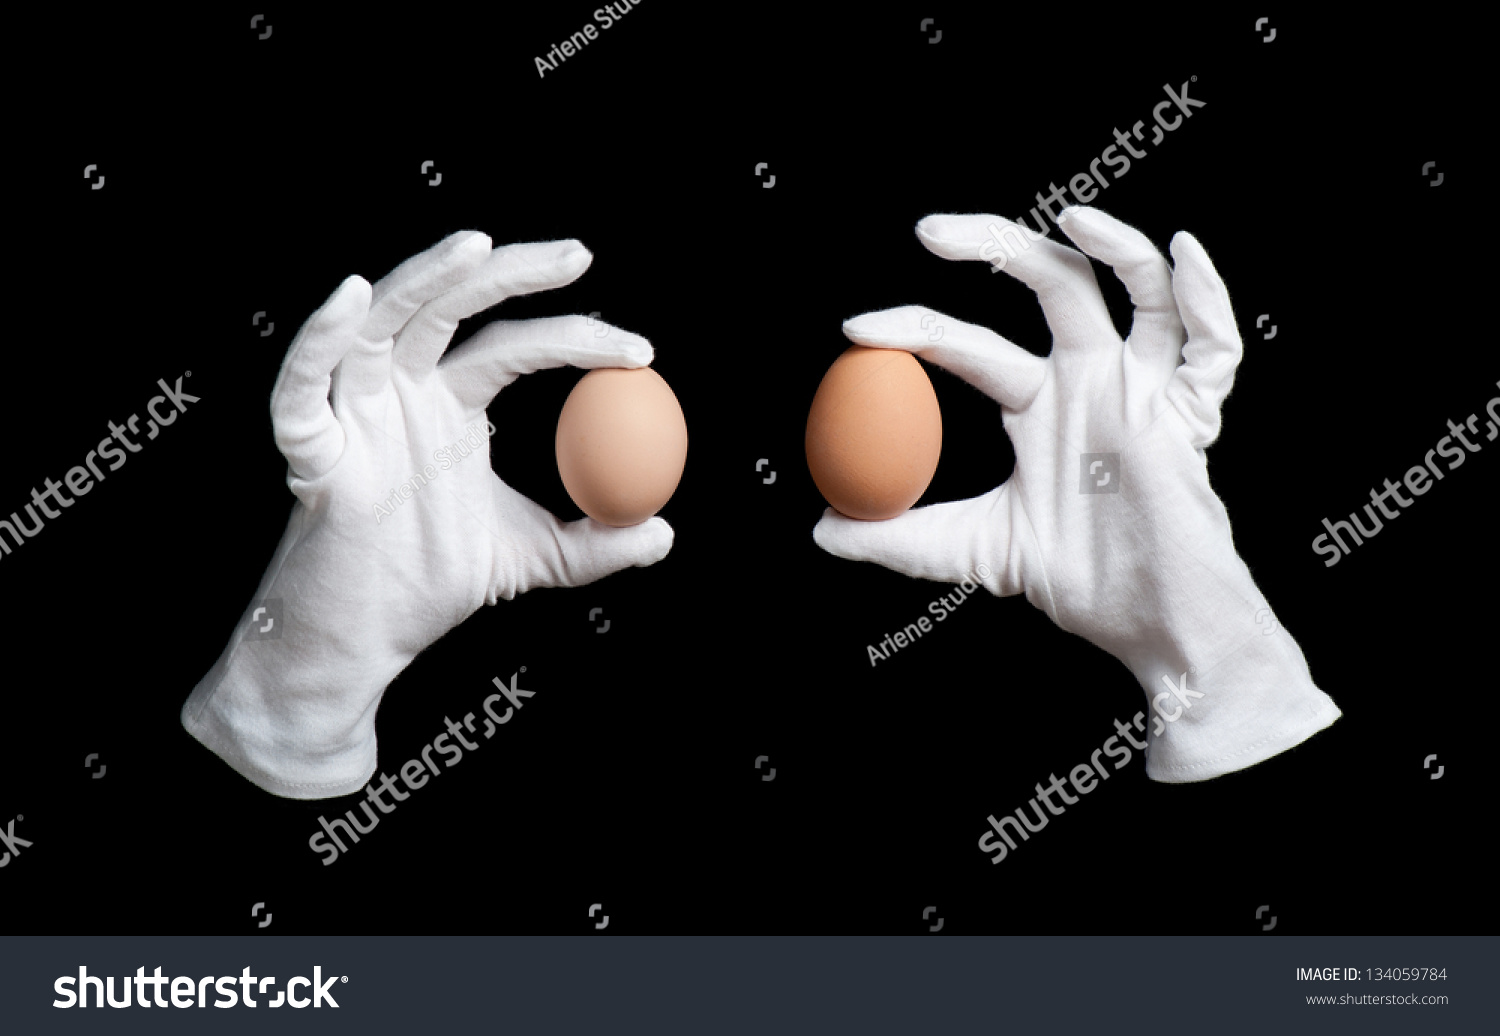 Black gloves white magic - Two Boiled Whole Eggs In White Gloves On Wizards Hands Magic Trick On Black Background